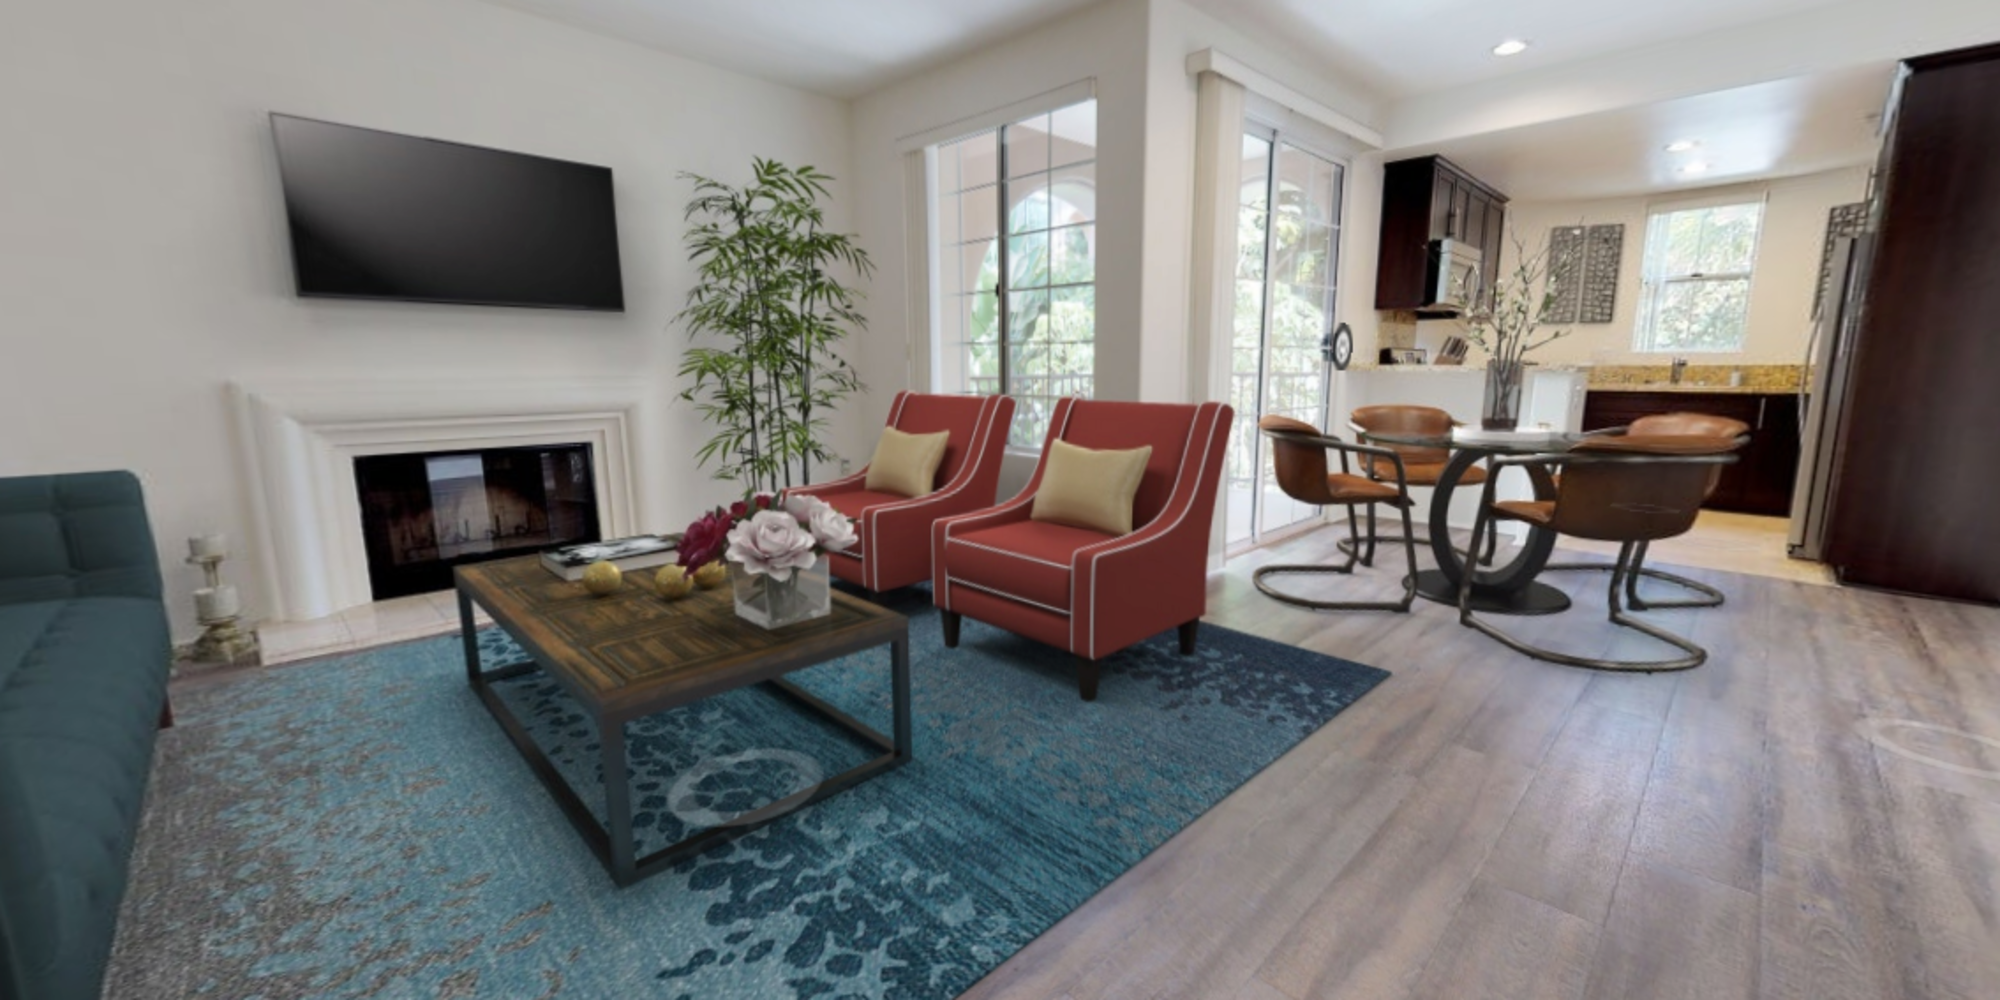 View a virtual tour of our two bedroom apartments at L'Estancia in Studio City, California